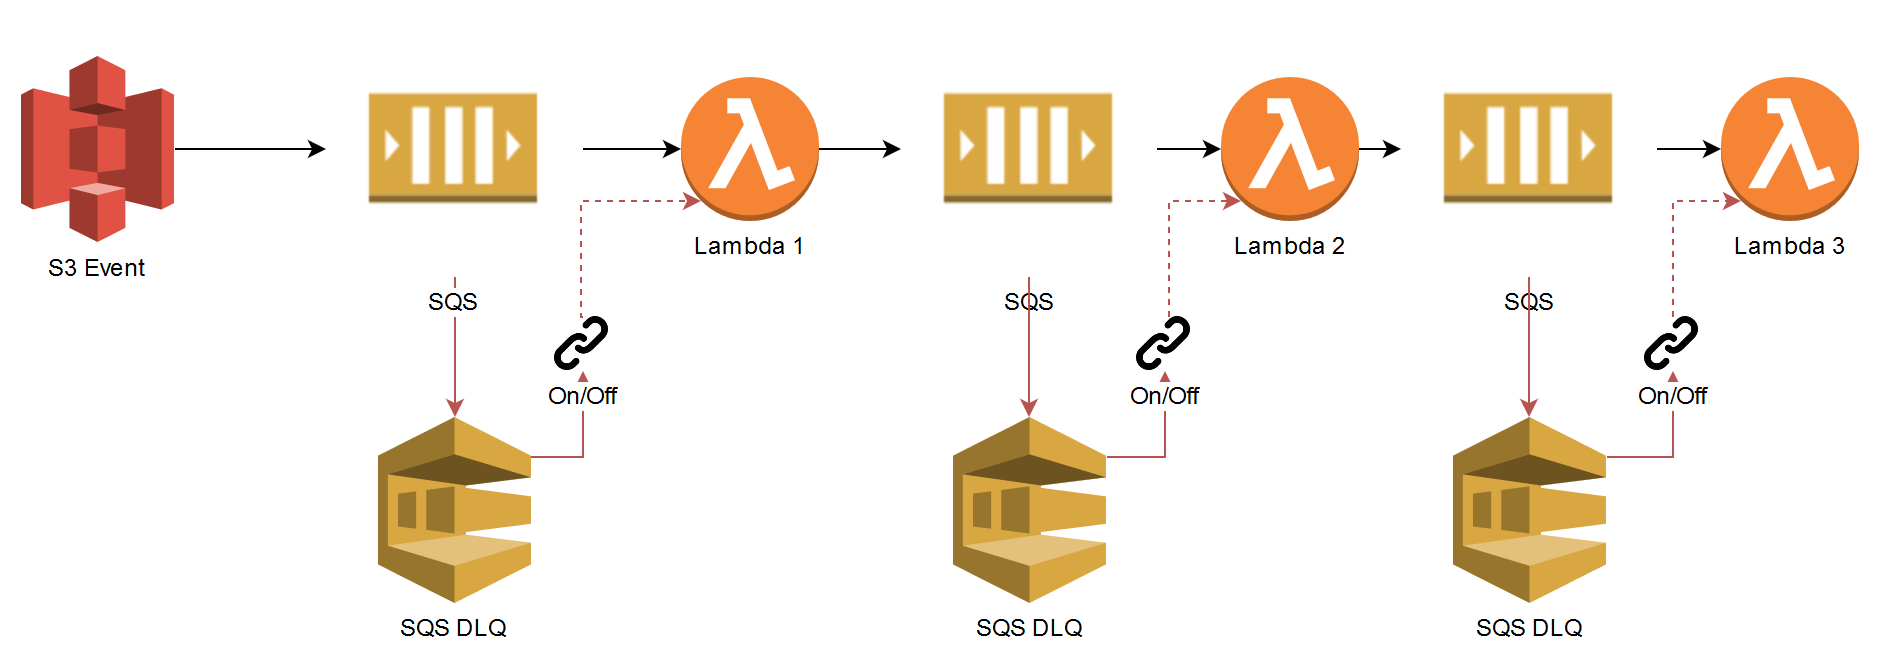 13 AWS Lambda design considerations you need to know about – Part 2